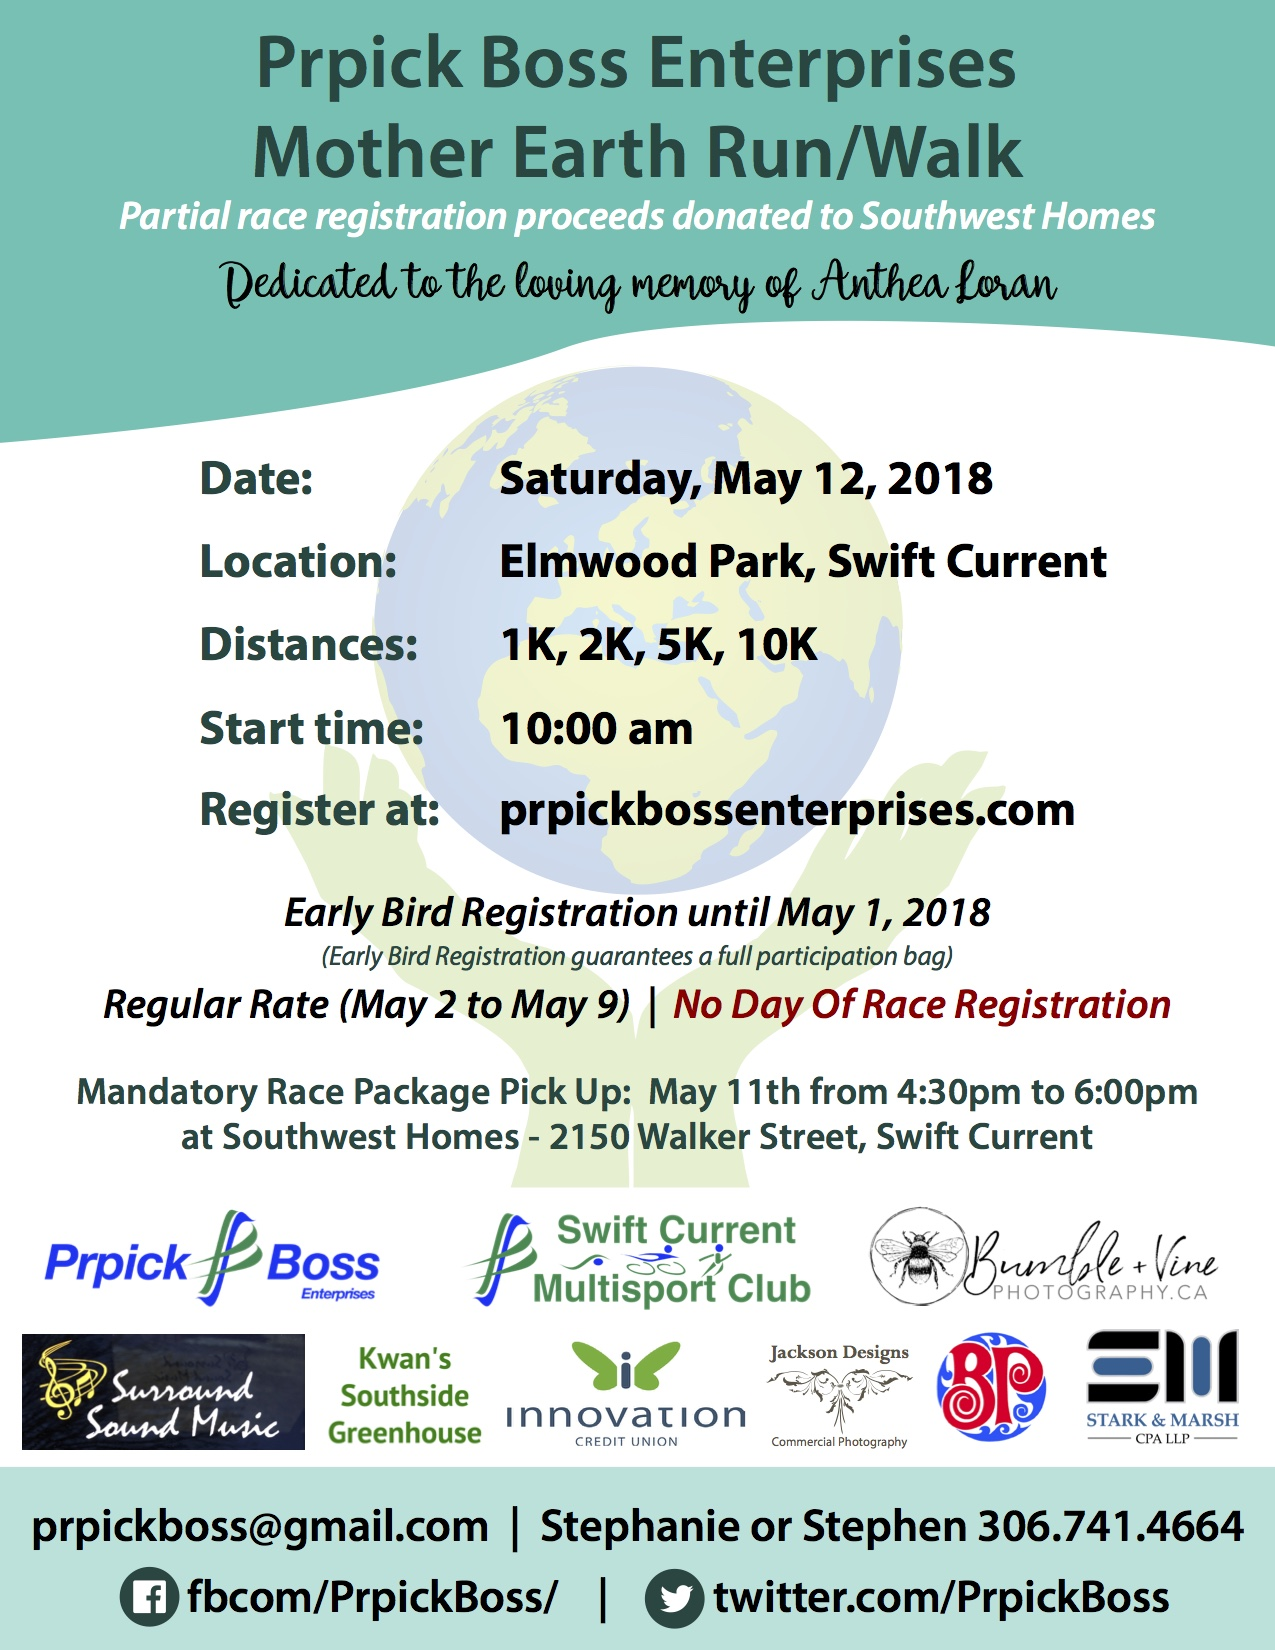 Prpick Boss Enterprises Mother Earth Run POSTER 2018 FINAL PRINT.jpg